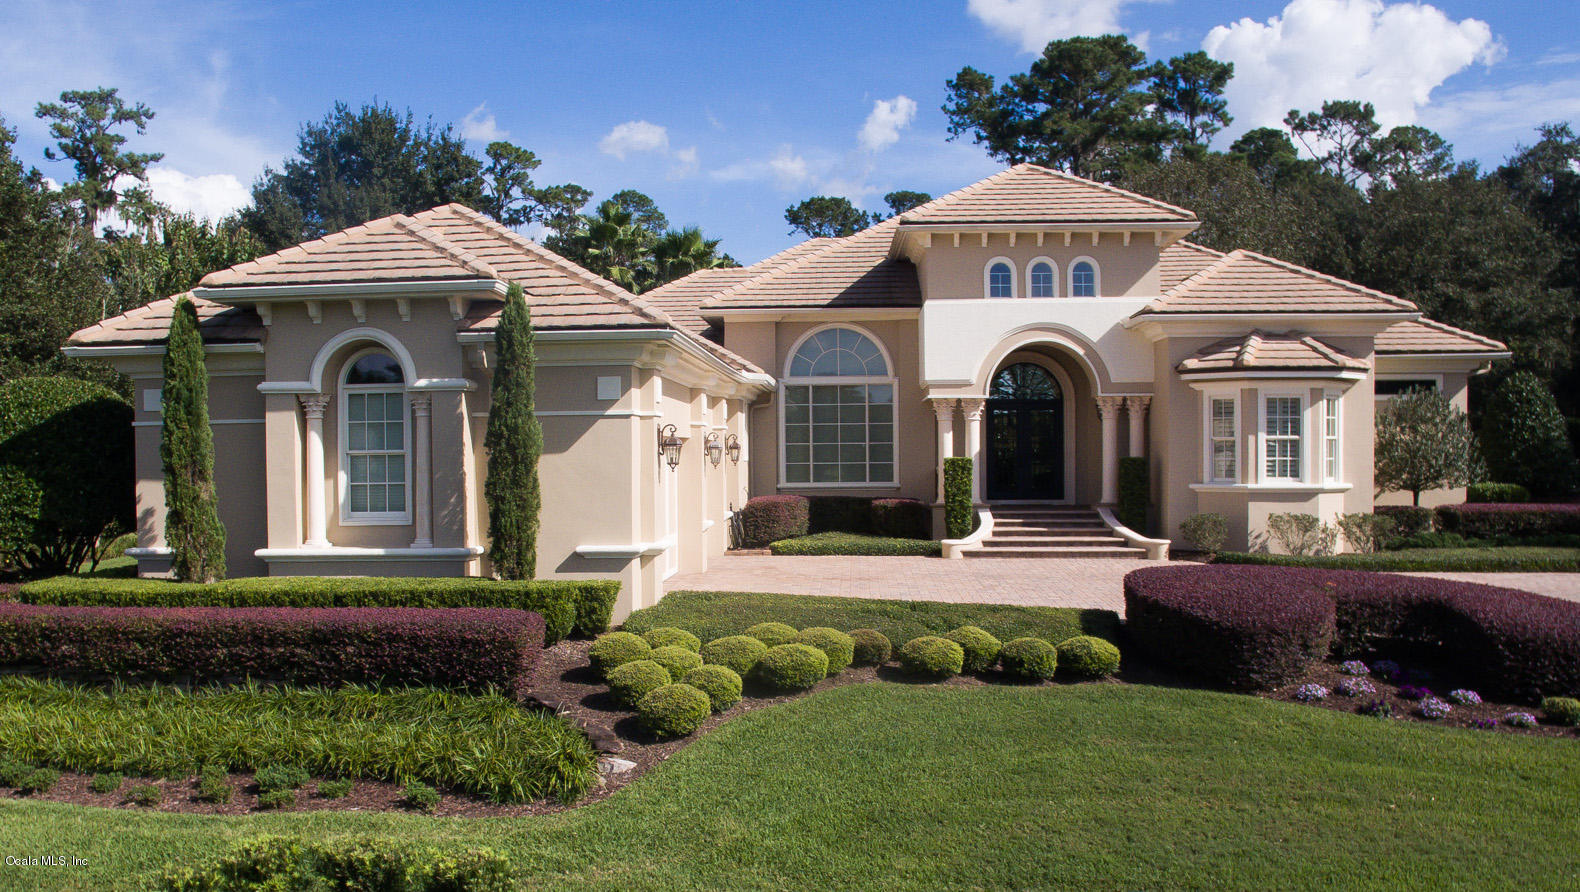 This spectacular home is located in the first class golf and equestrian community of golden ocala situated in the rolling hills of central nw ocalas horse